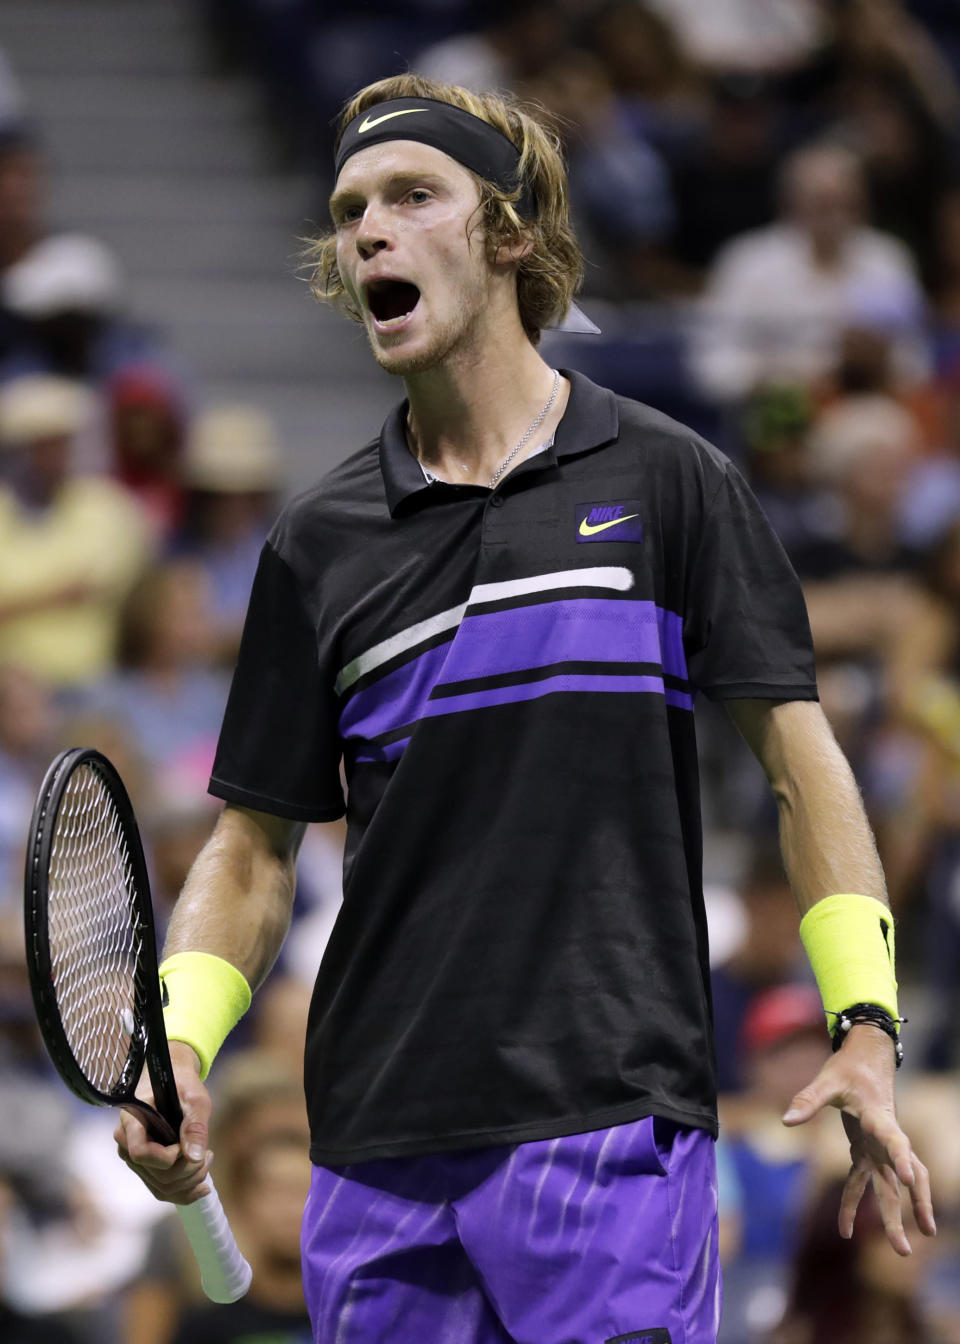 Andrey Rublev, of Russia, reacts against Nick Kyrgios, of Australia, during the third round of the U.S. Open tennis tournament Saturday, Aug. 31, 2019, in New York. (AP Photo/Adam Hunger)